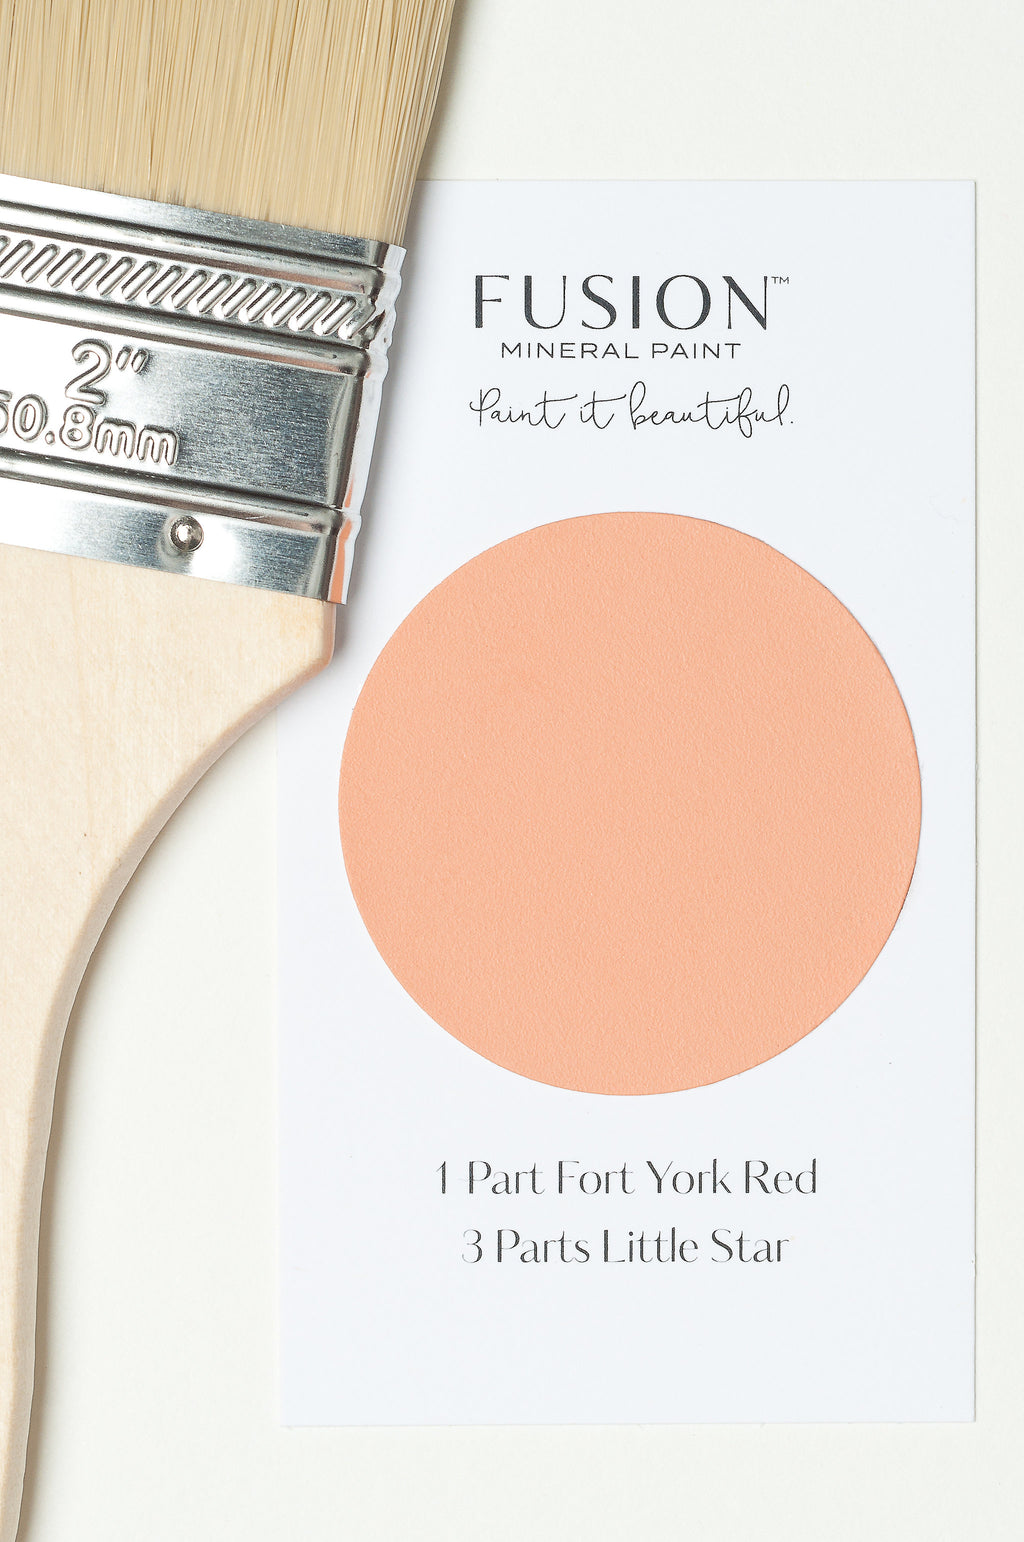 Fusion Mineral Paint - Custom Blend 11